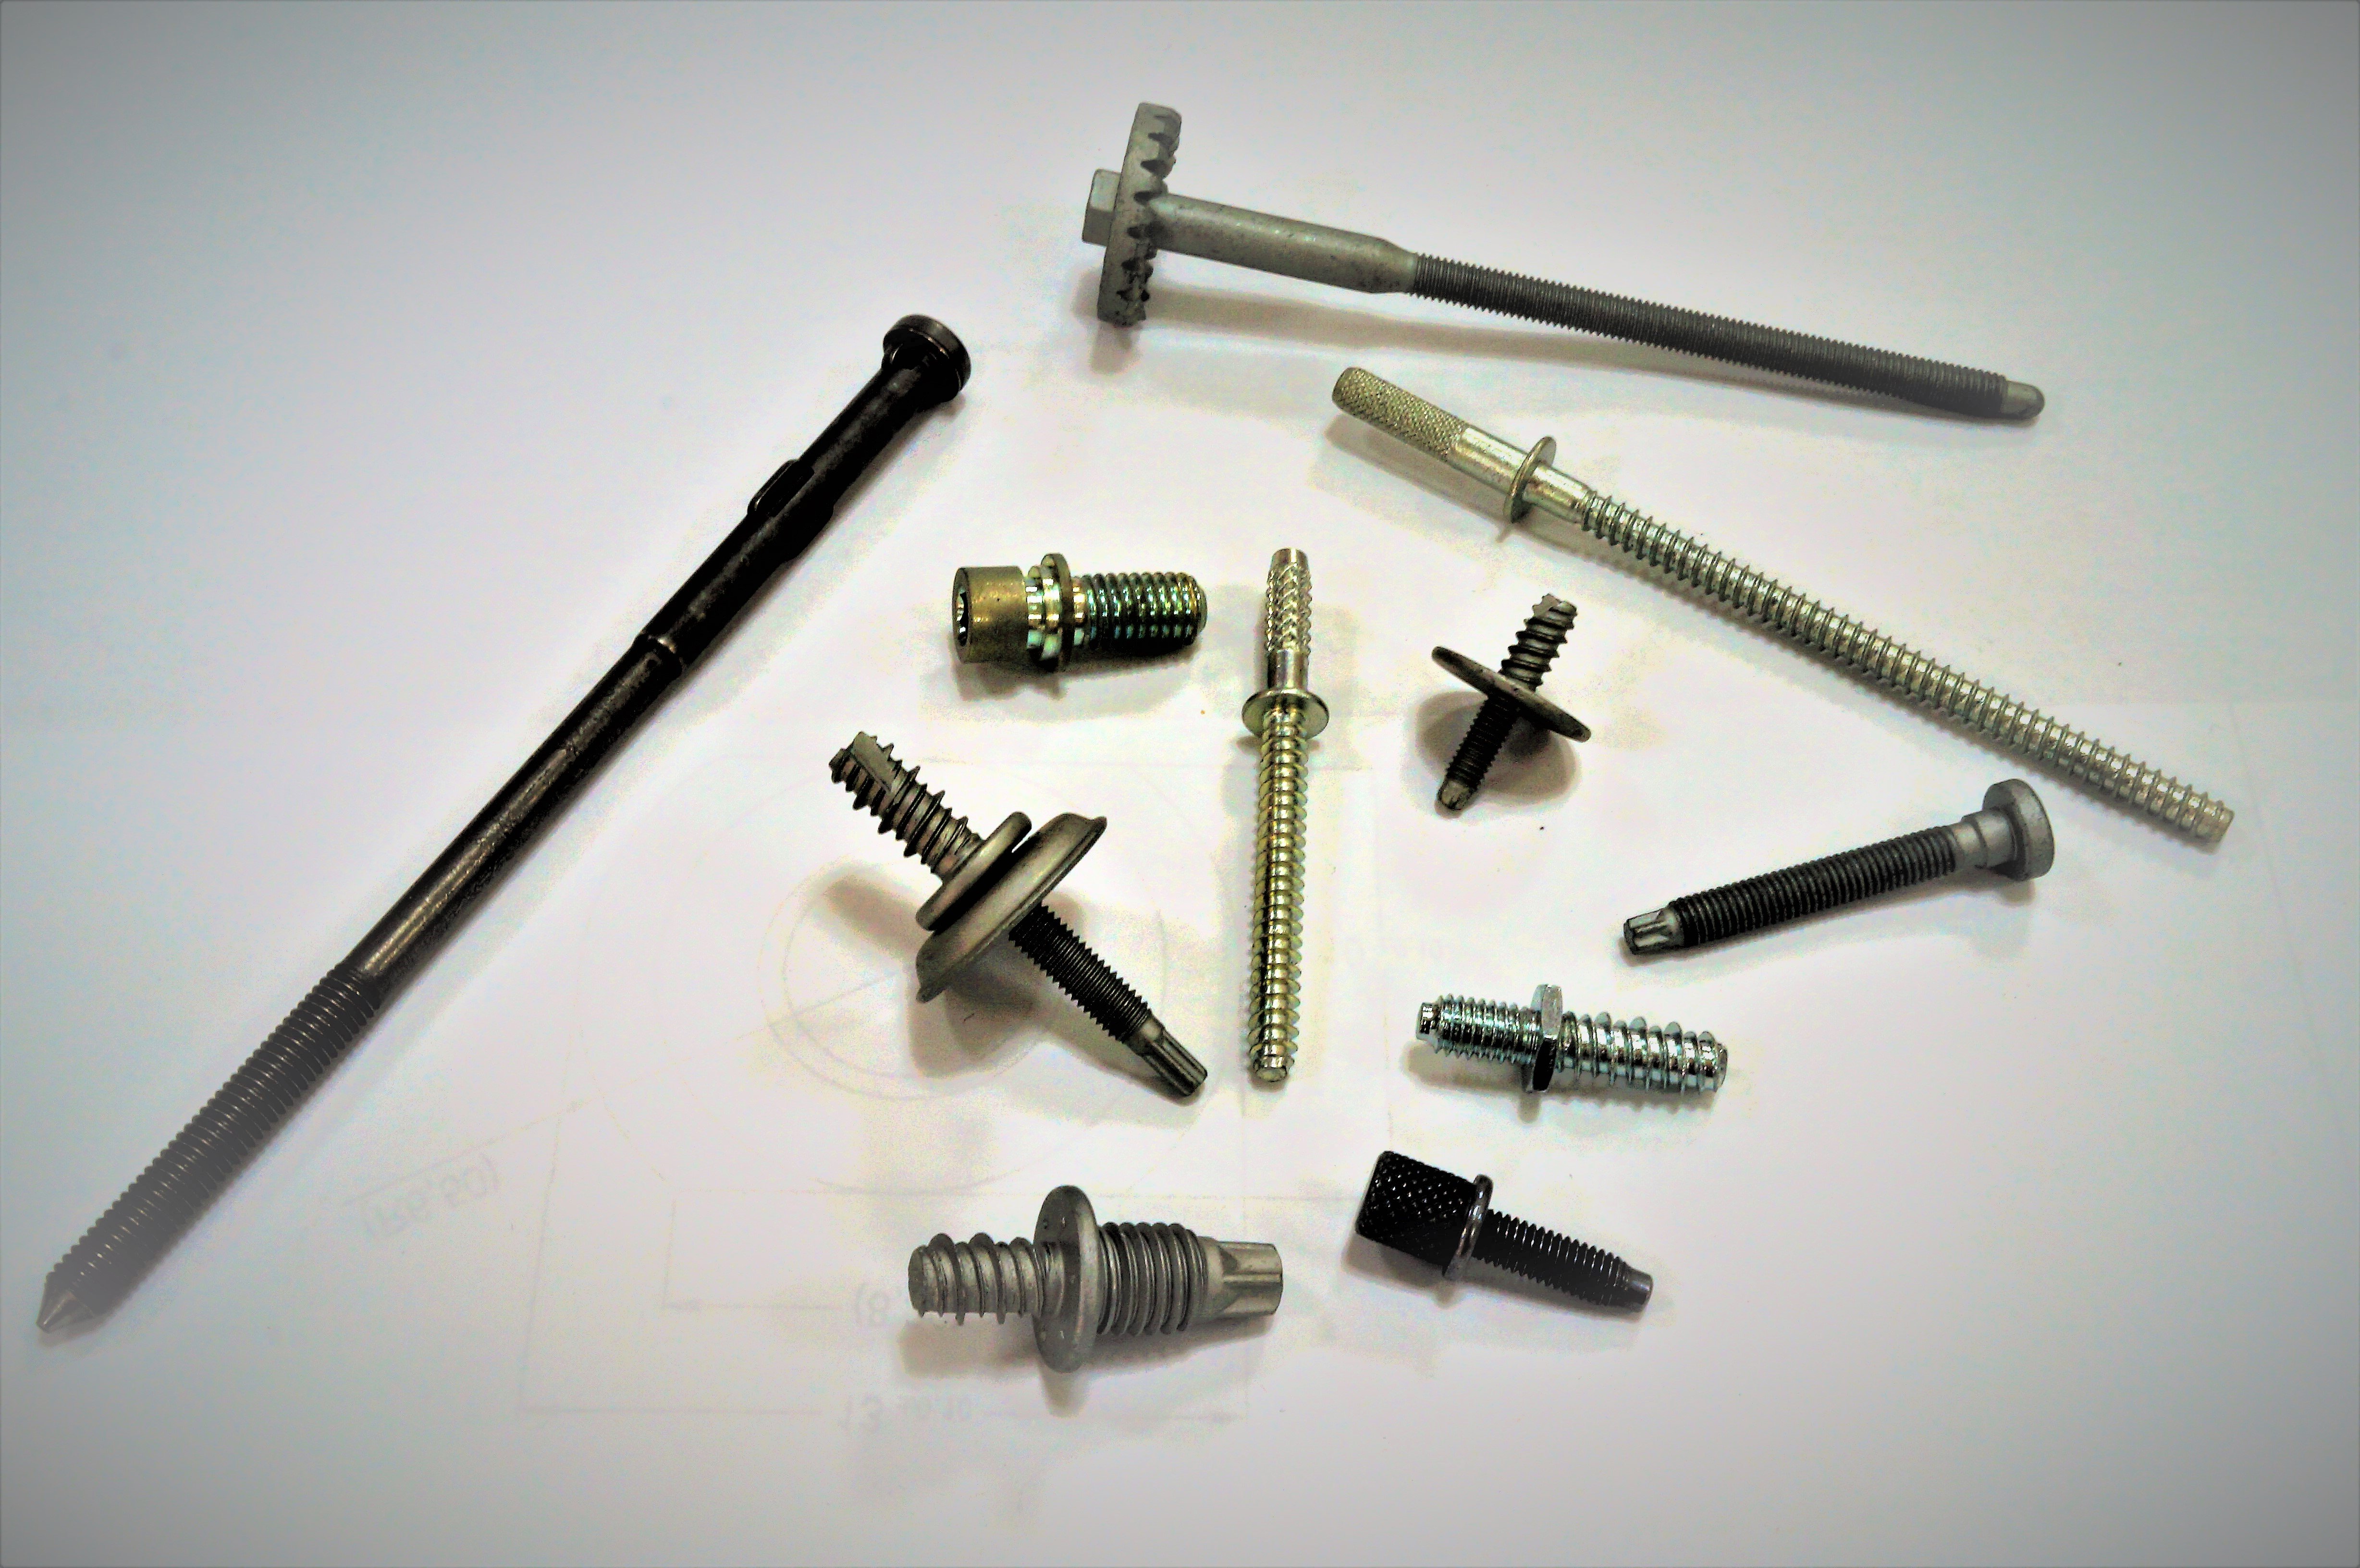 Truck / Trailer / Heavy Duty Double End Screw for Vehicle Fastener made by Sunny Screw Industry 三能螺栓工業股份有限公司 - MatchSupplier.com